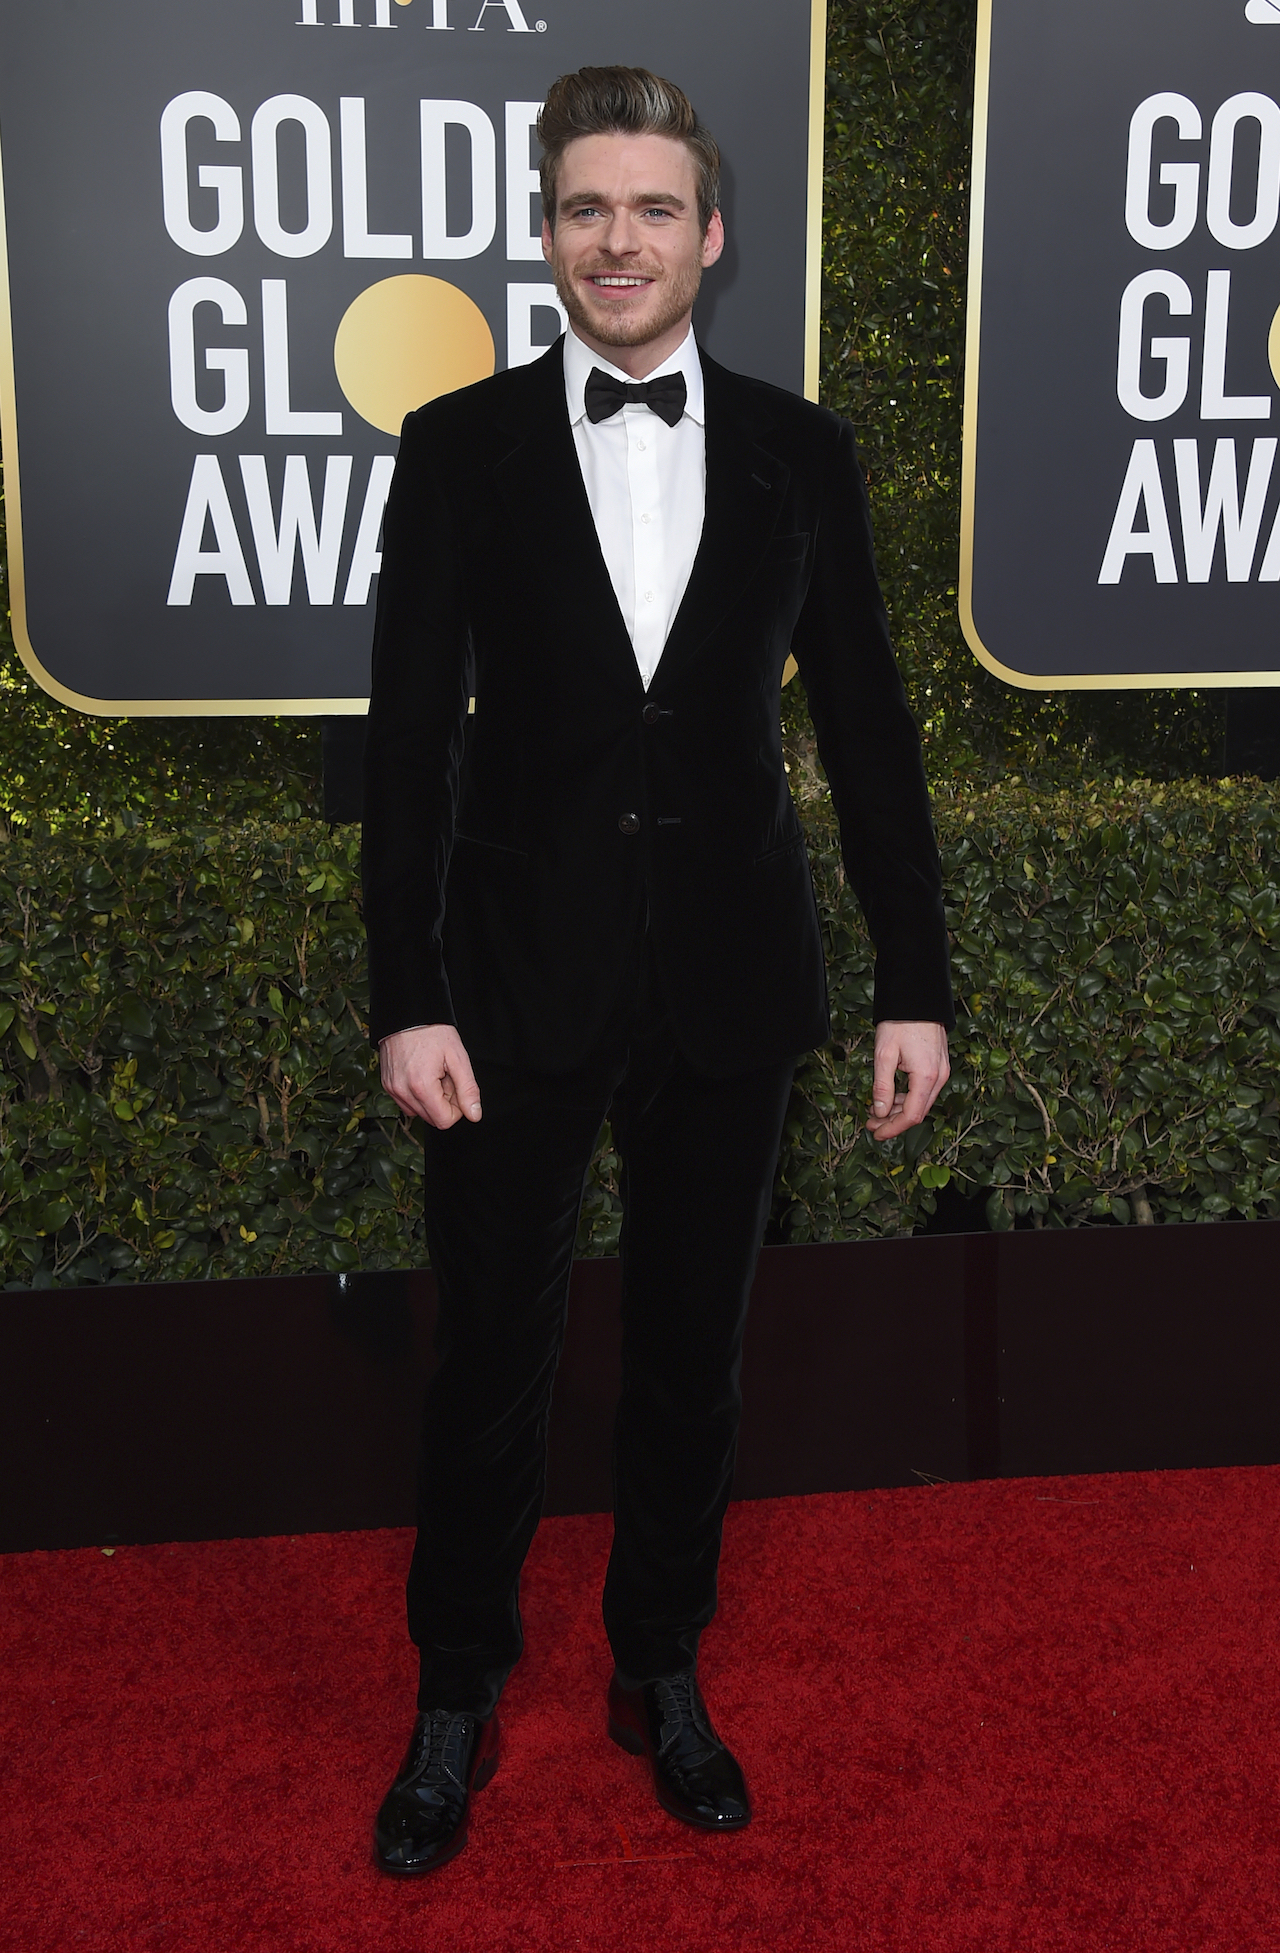 "<div class=""meta image-caption""><div class=""origin-logo origin-image ap""><span>AP</span></div><span class=""caption-text"">Richard Madden arrives at the 76th annual Golden Globe Awards at the Beverly Hilton Hotel on Sunday, Jan. 6, 2019, in Beverly Hills, Calif. (Photo by Jordan Strauss/Invision/AP) (Jordan Strauss/Invision/AP)</span></div>"